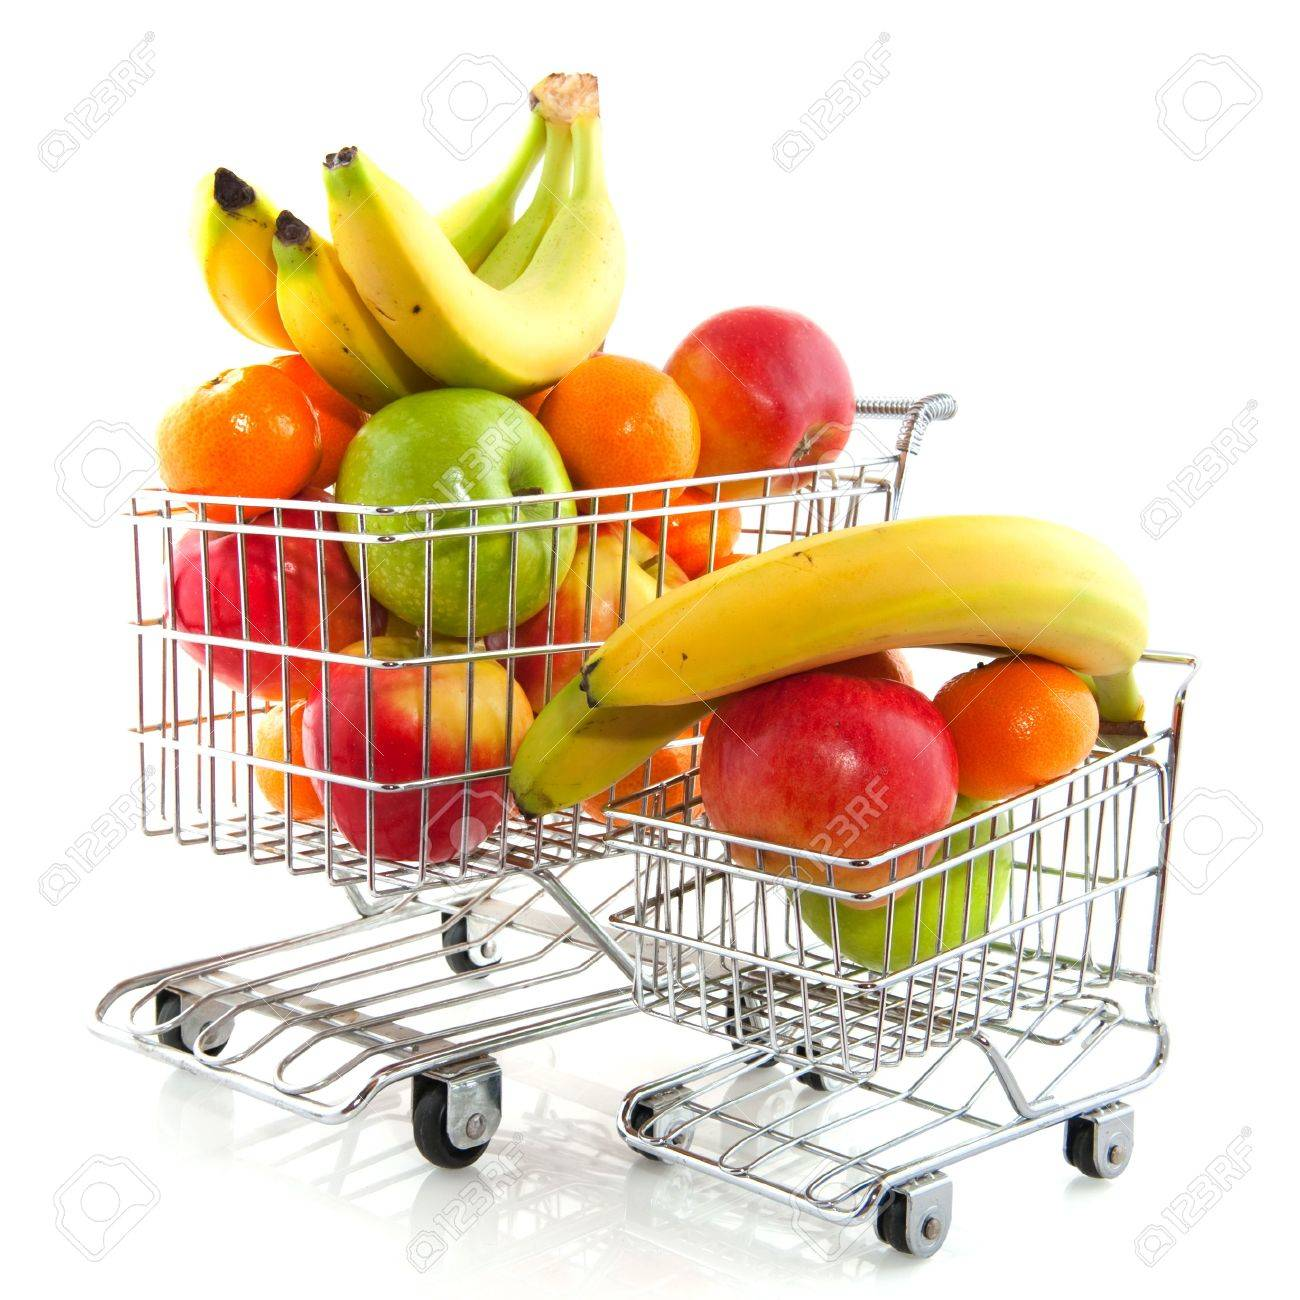 Shopping cart from the supermarket filled with fresh fruit Stock Photo - 6087229